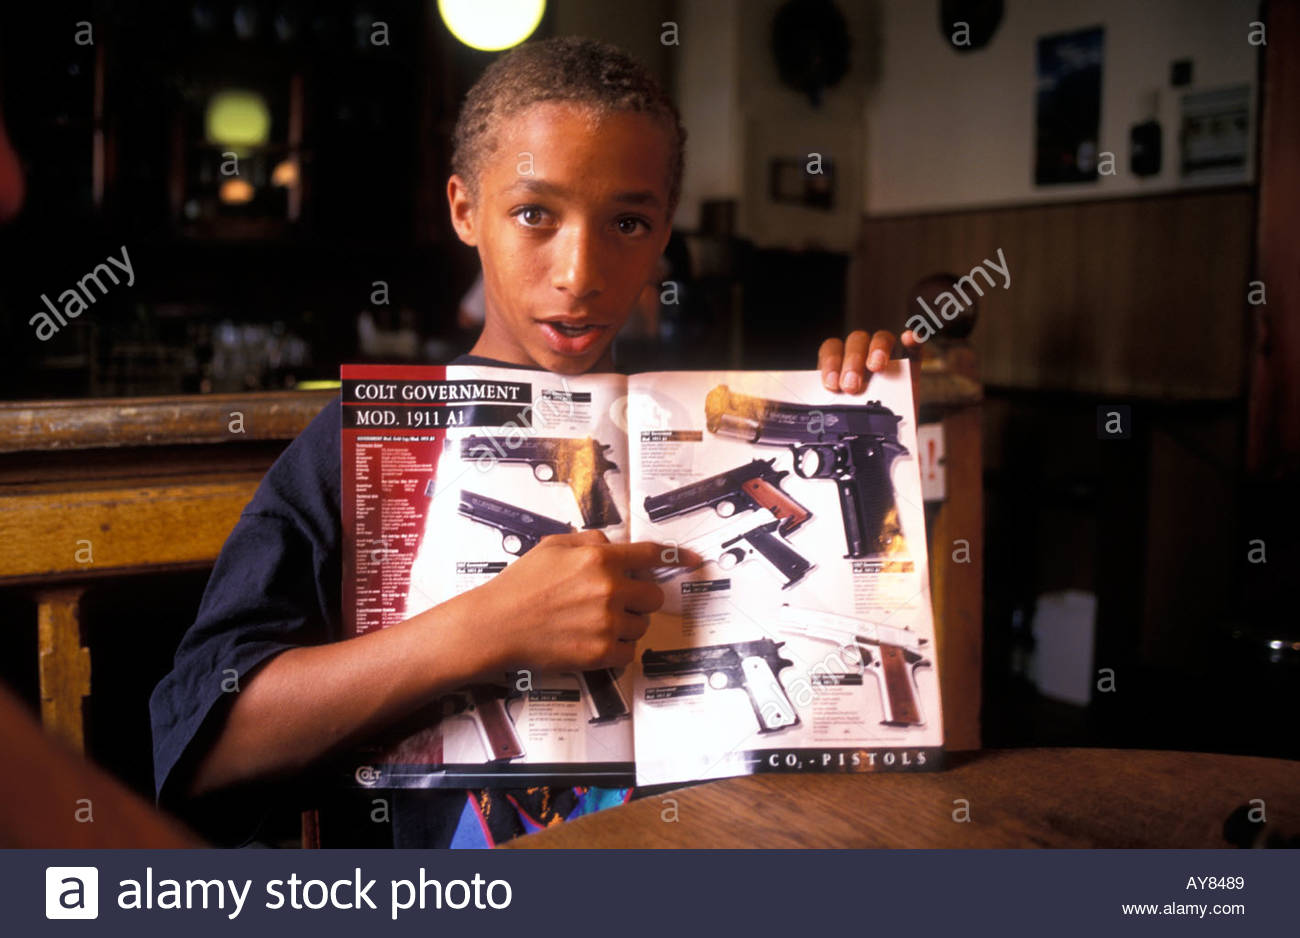 Magazine Boy Stock Photos & Magazine Boy Stock Images - Alamy